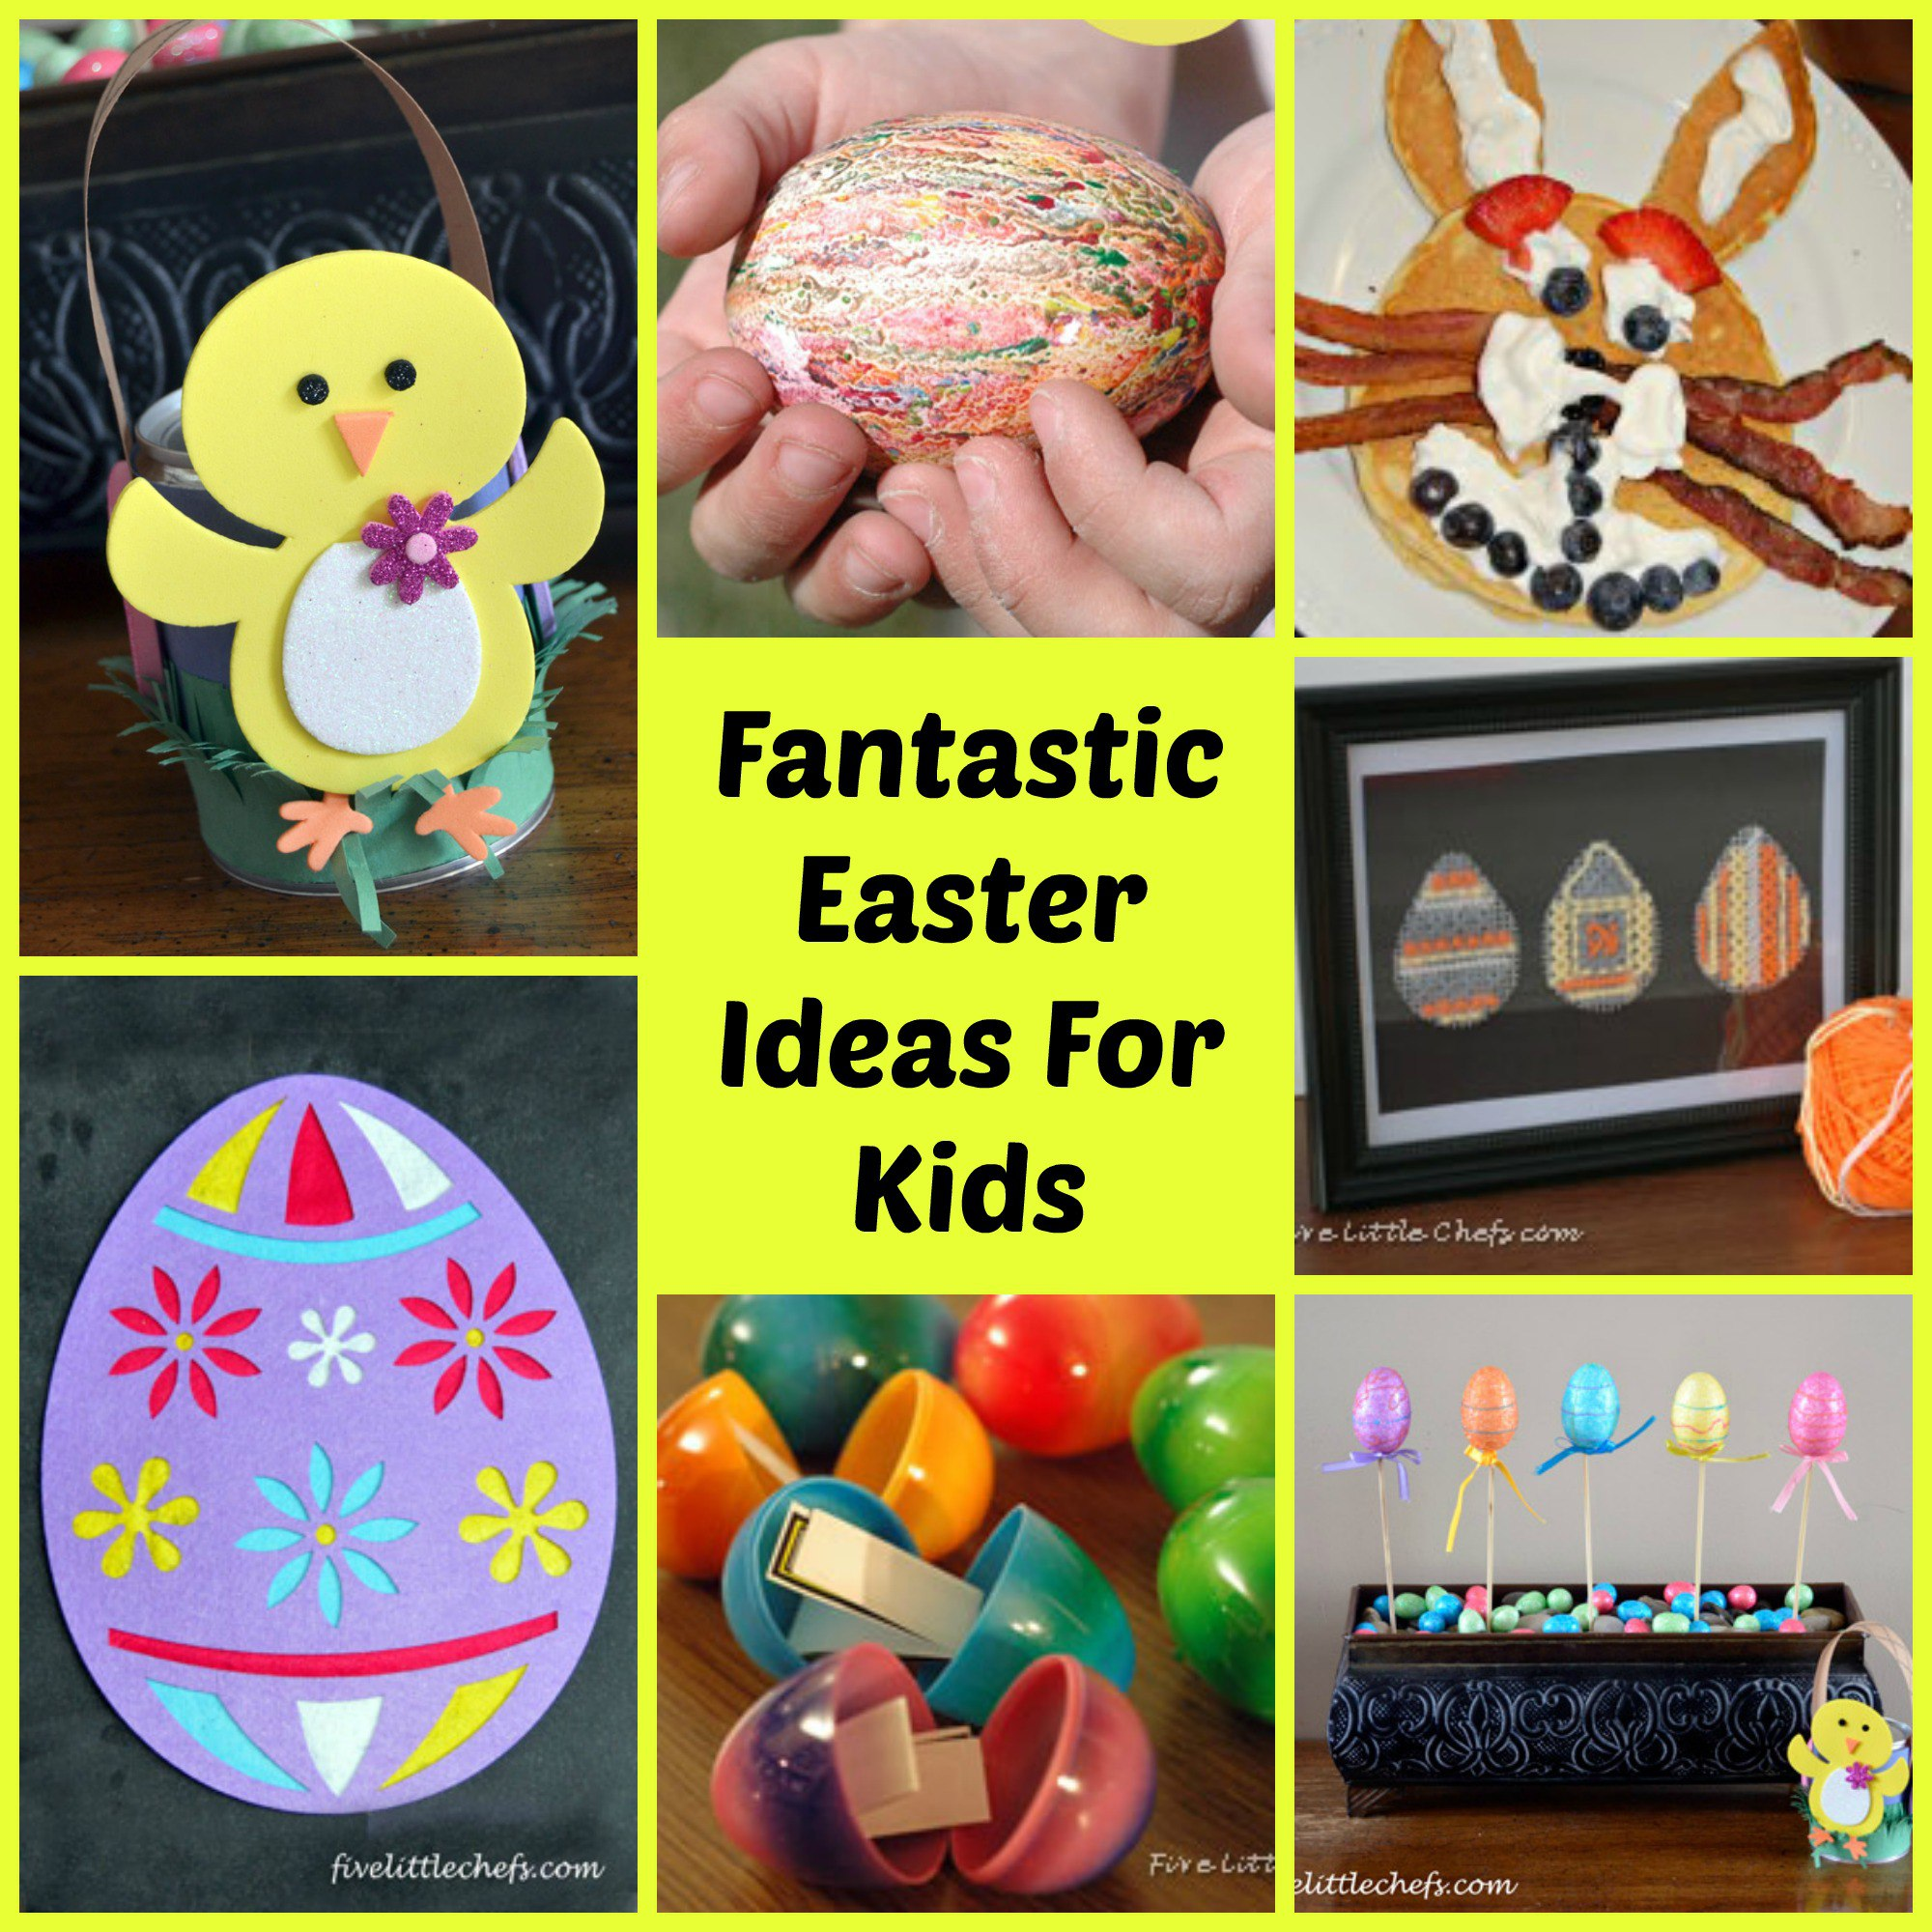 Easter ideas for kids from fivelittlechefs.com